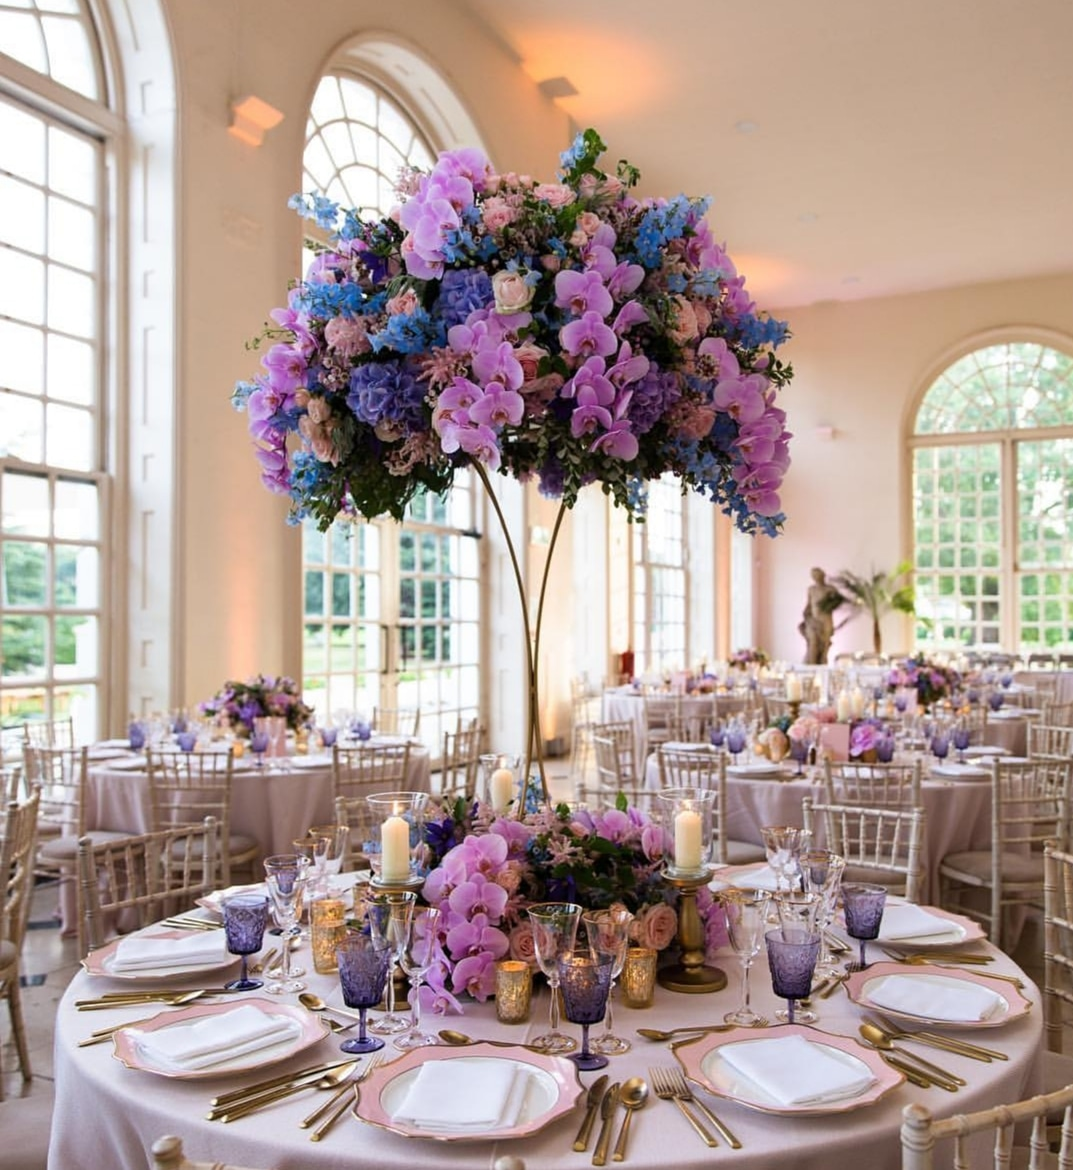 Kew Gardens - Asian Weddings Venues by Laguna, Asian caterers in London